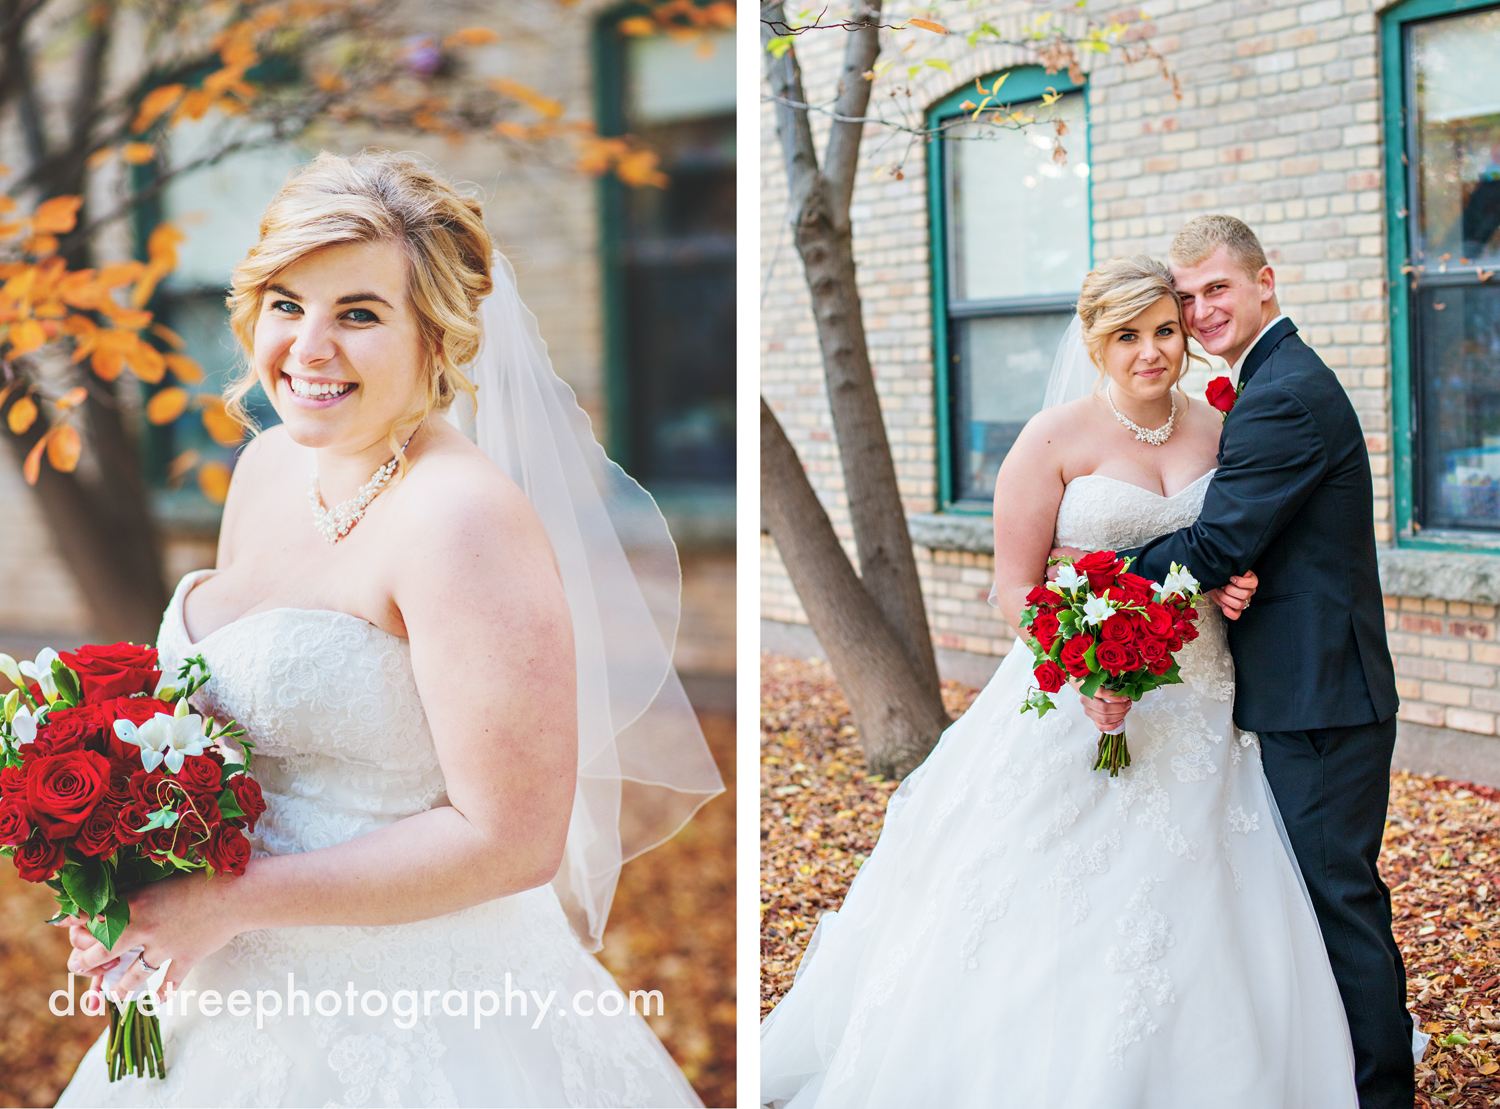 holland_wedding_photographer_01.jpg